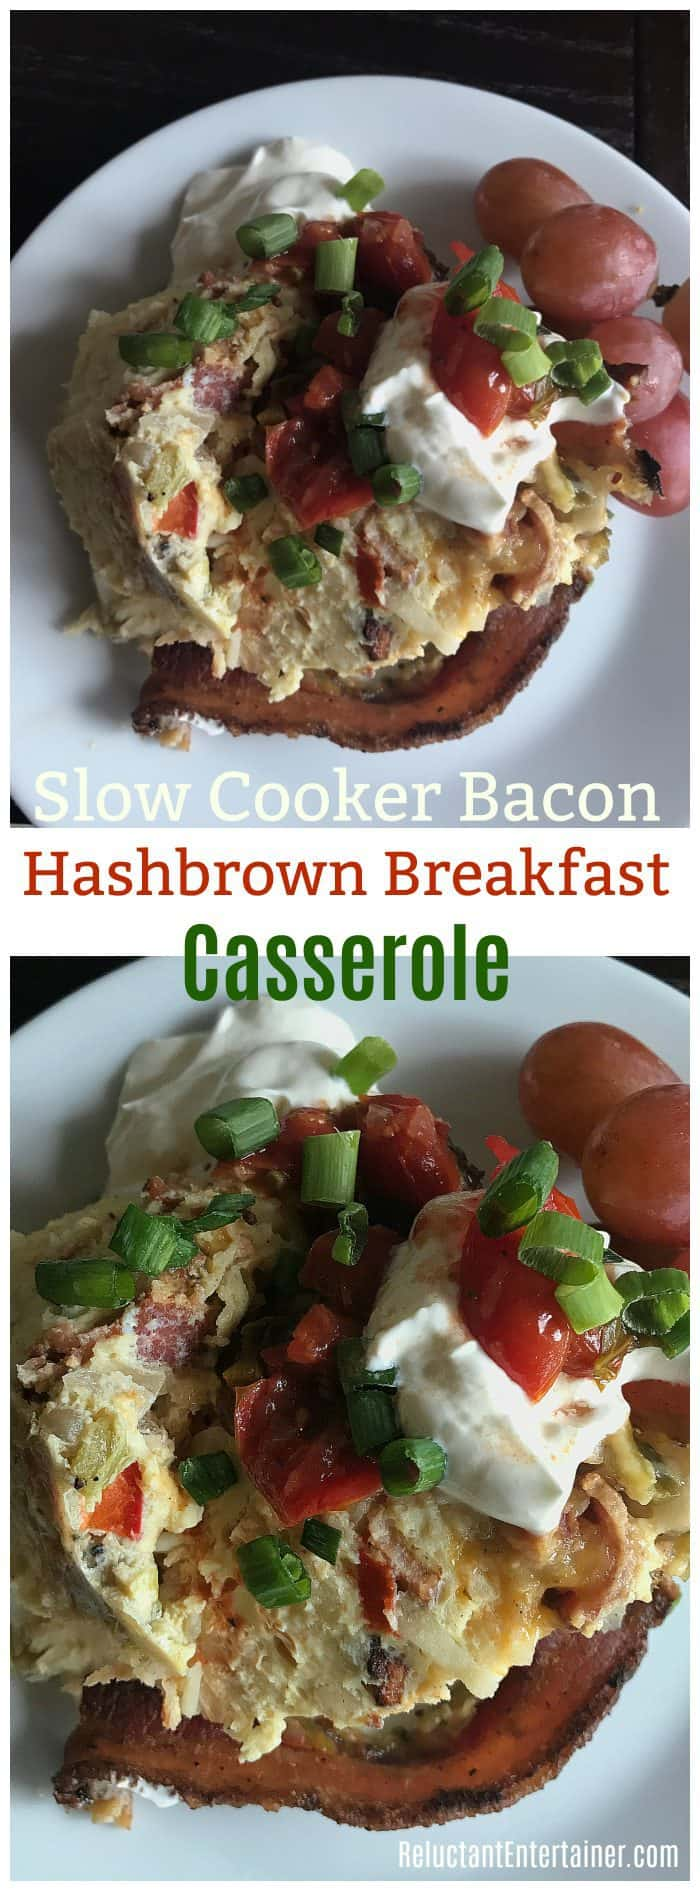 Slow Cooker Bacon Hashbrown Breakfast Casserole